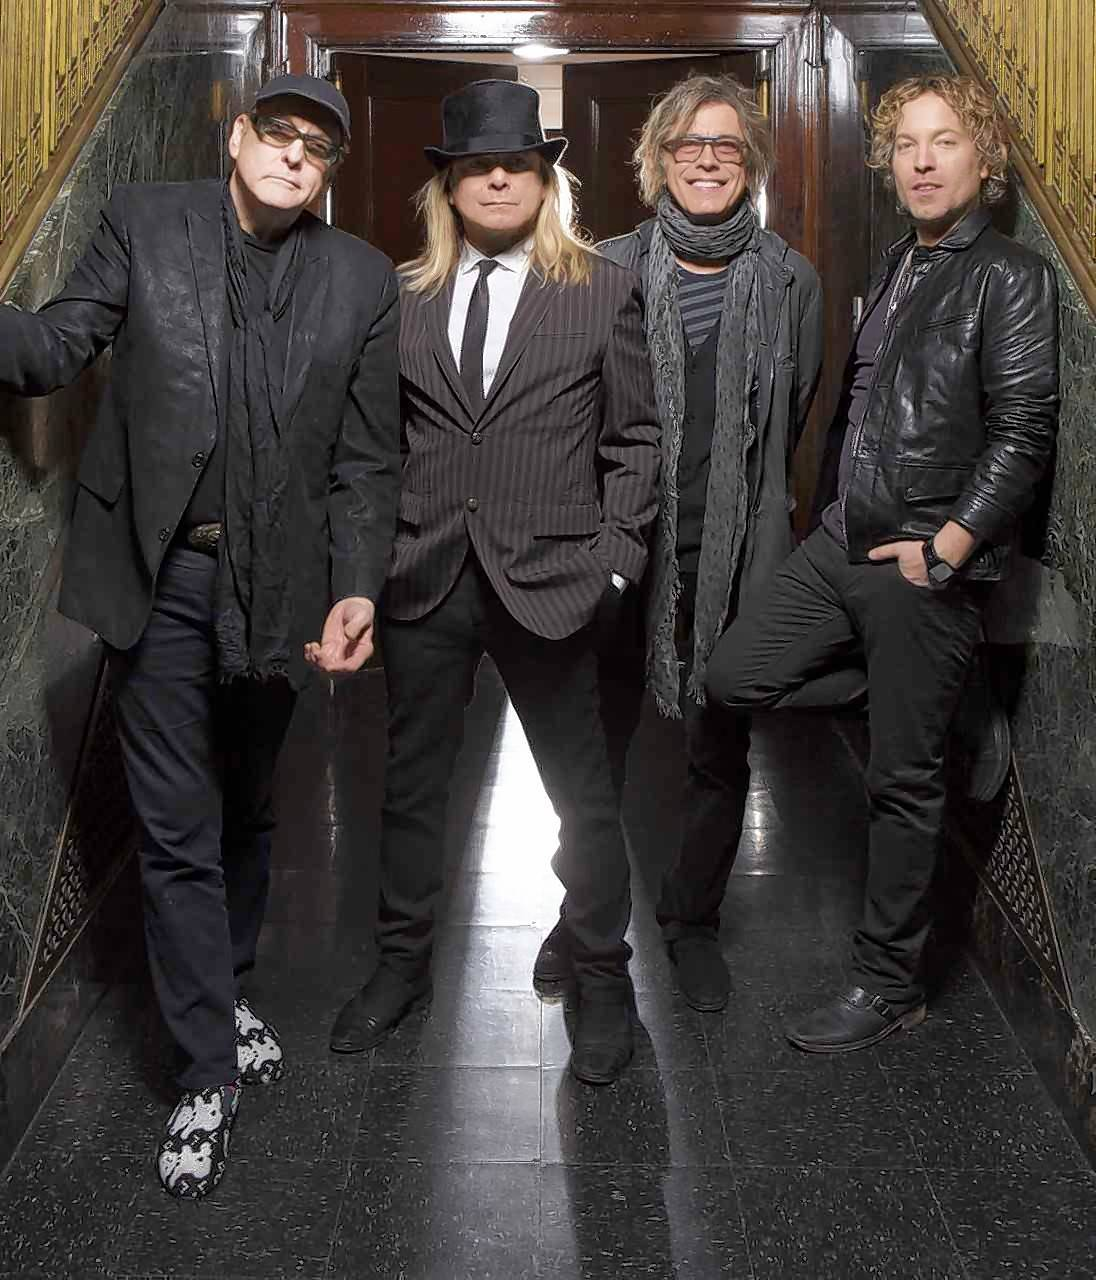 Cheap Trick is set to perform Friday, June 7, at the Genesee Theatre in Waukegan.